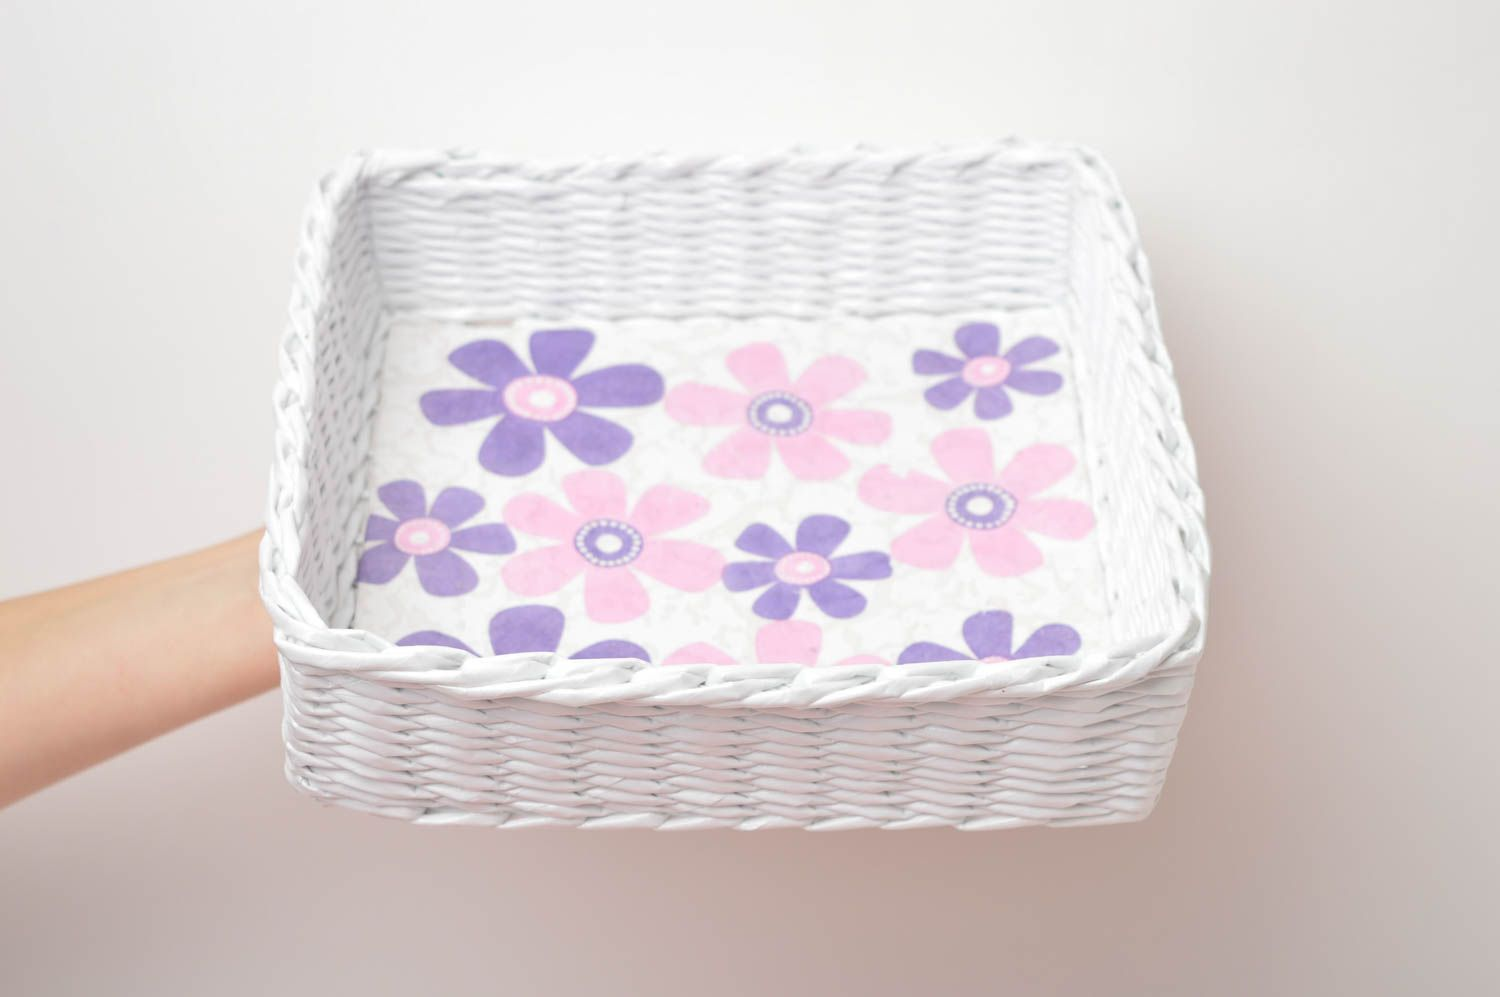 Handmade decorations woven basket paper basket gifts for women home decor photo 5